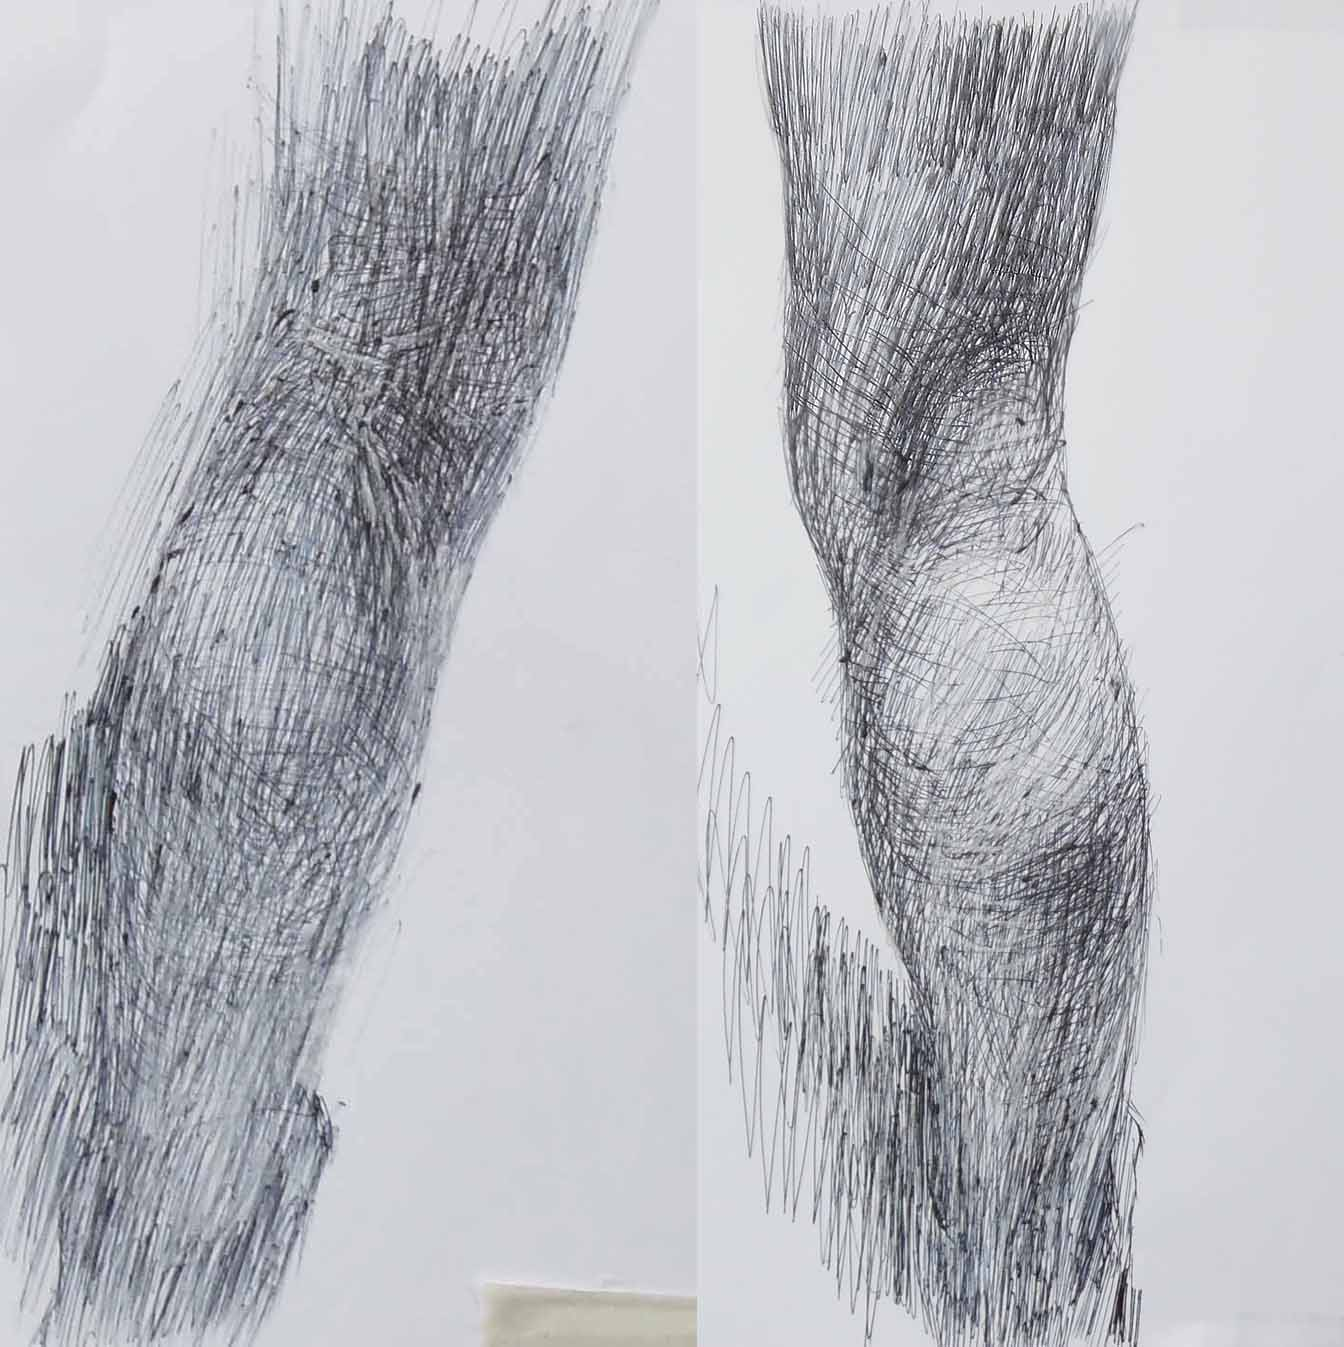 Newberry, Eve, detail of legs, ink